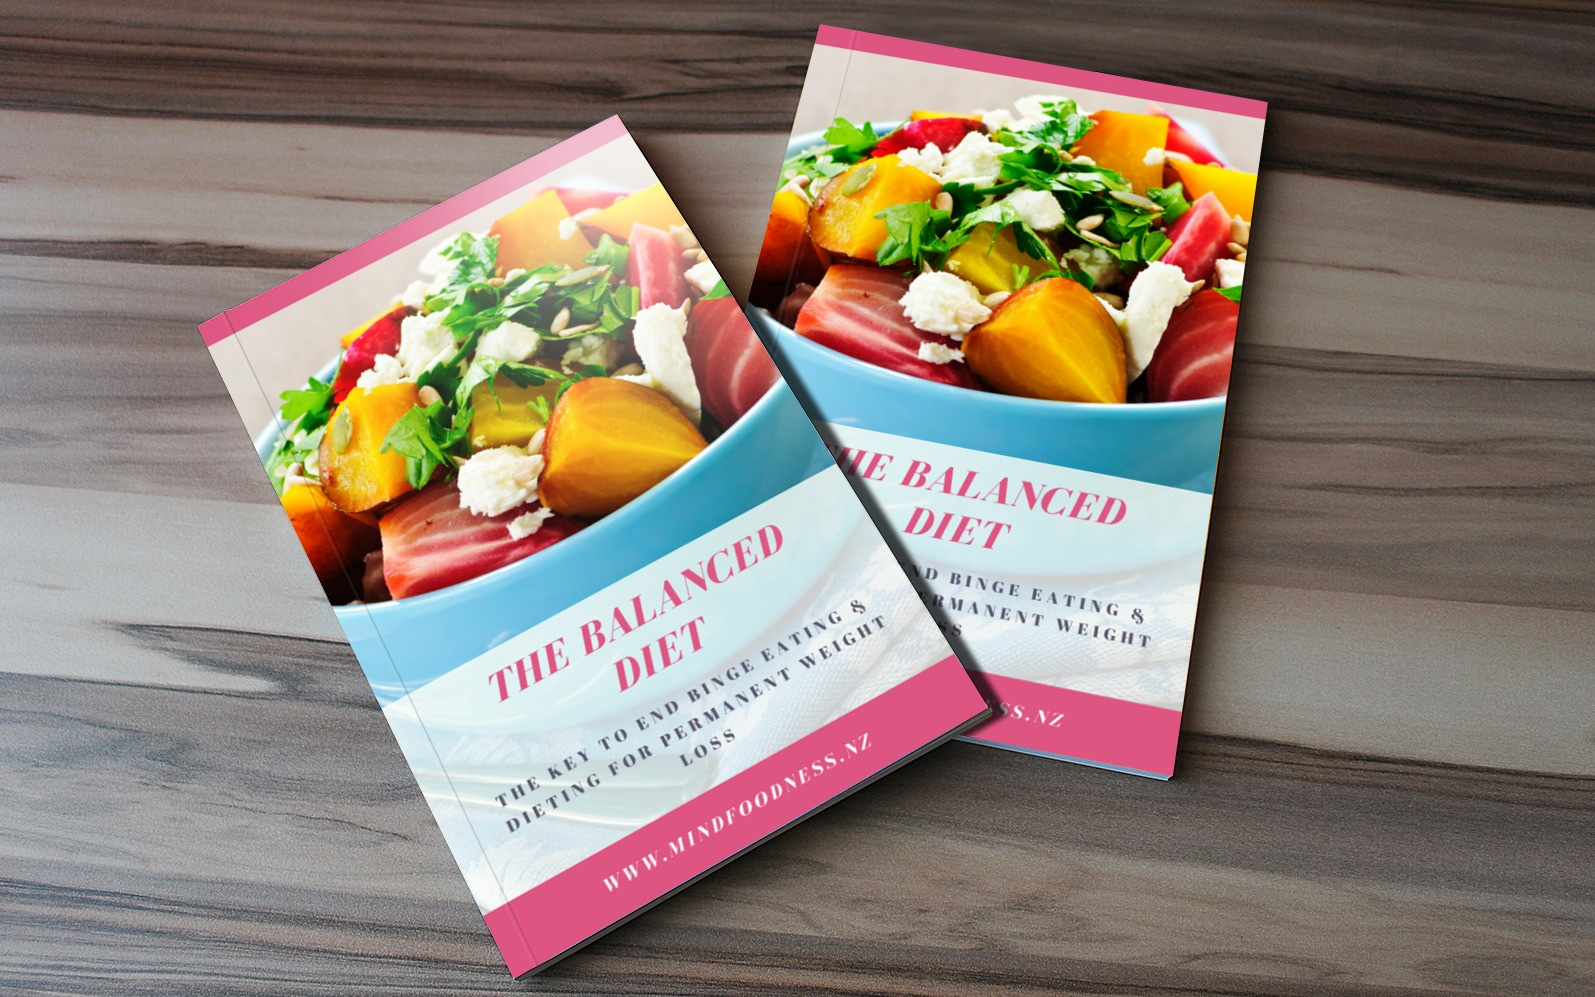 The Balanced Diet Book